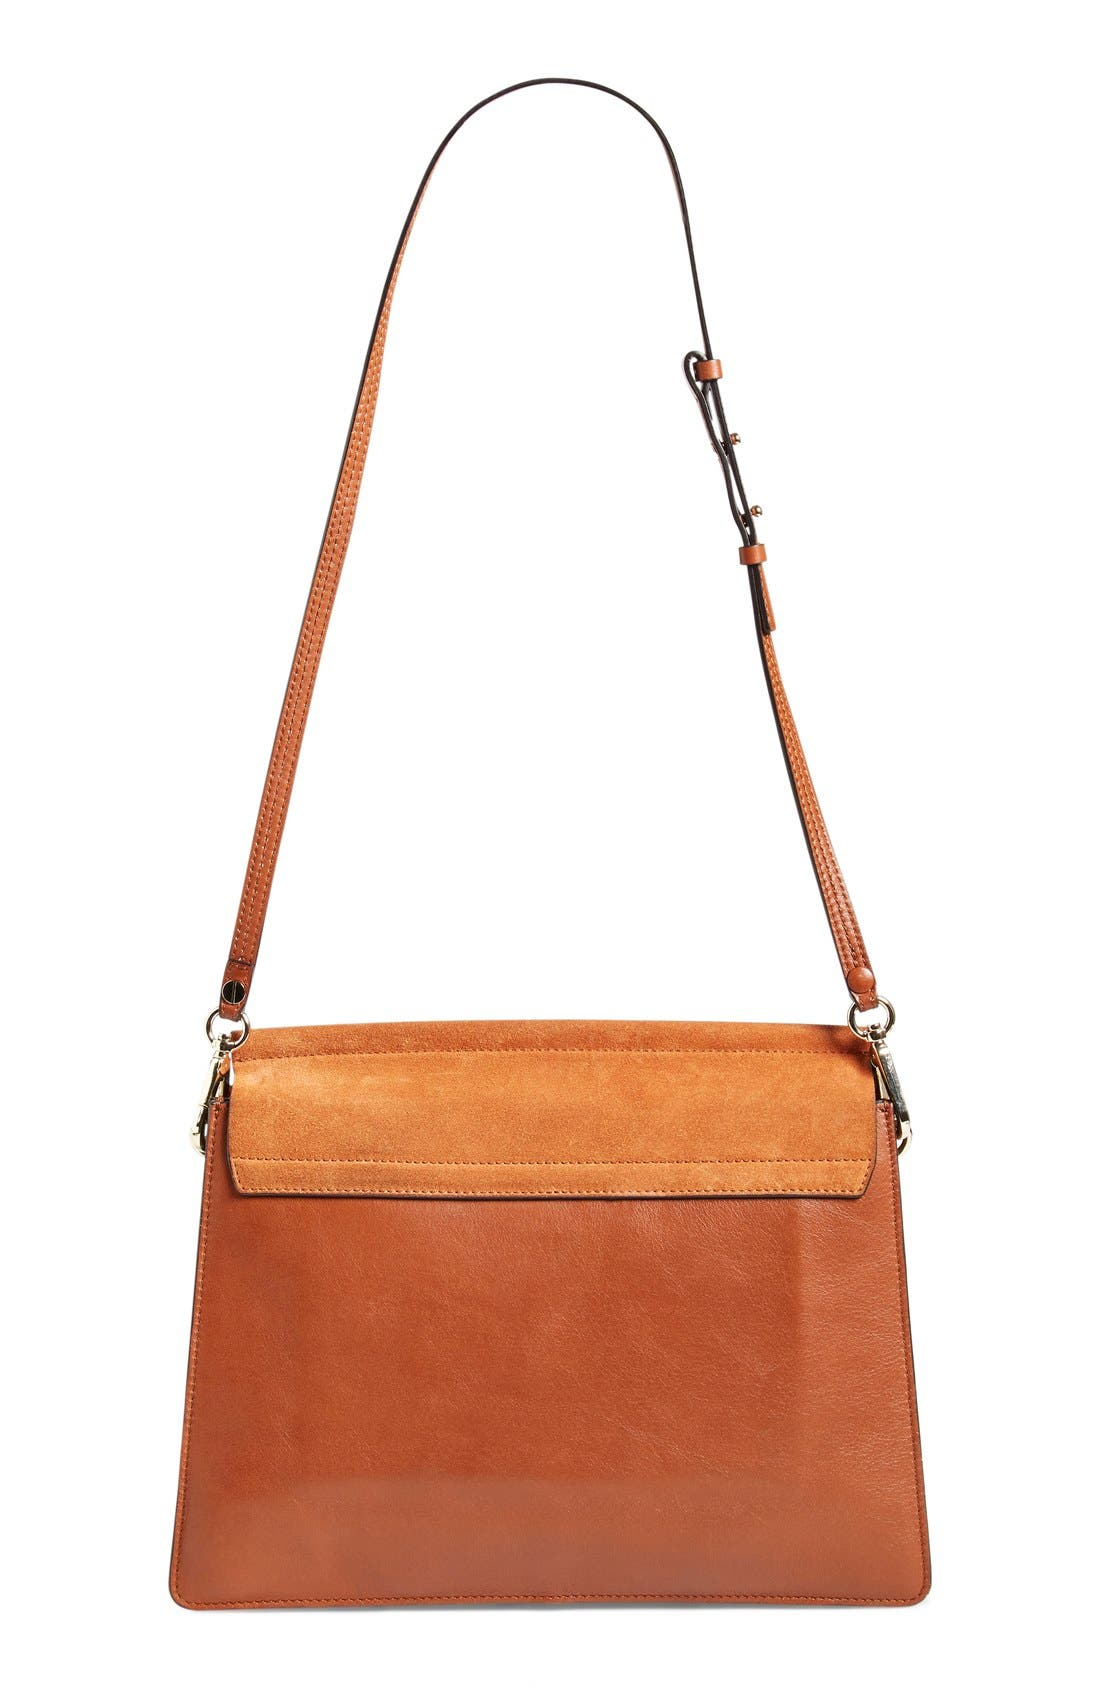 'Faye' Leather & Suede Shoulder Bag,                             Alternate thumbnail 2, color,                             Classic Tobacco